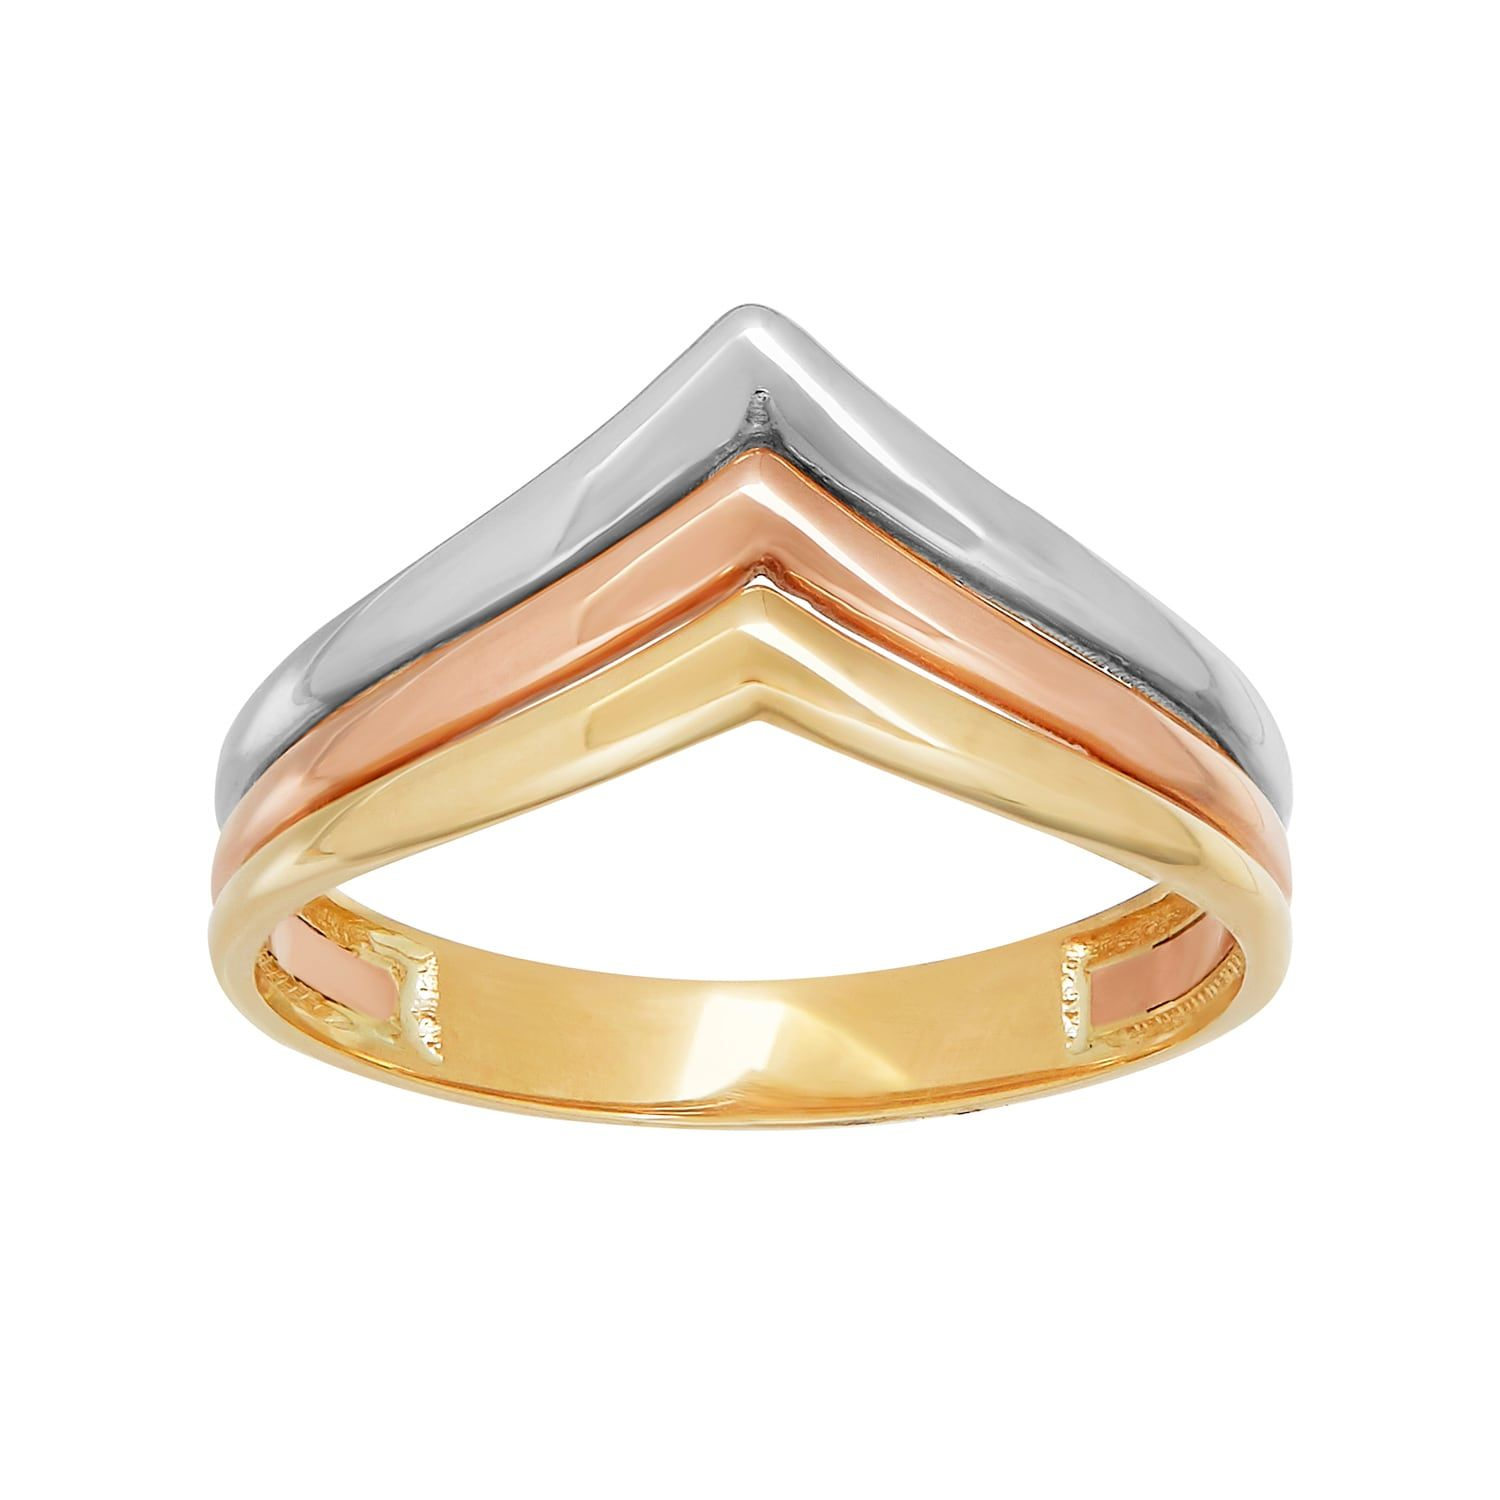 Everlasting Gold Tri Tone 10k Gold Chevron Ring Gold Chevron Ring Chevron Ring Gold Chevron